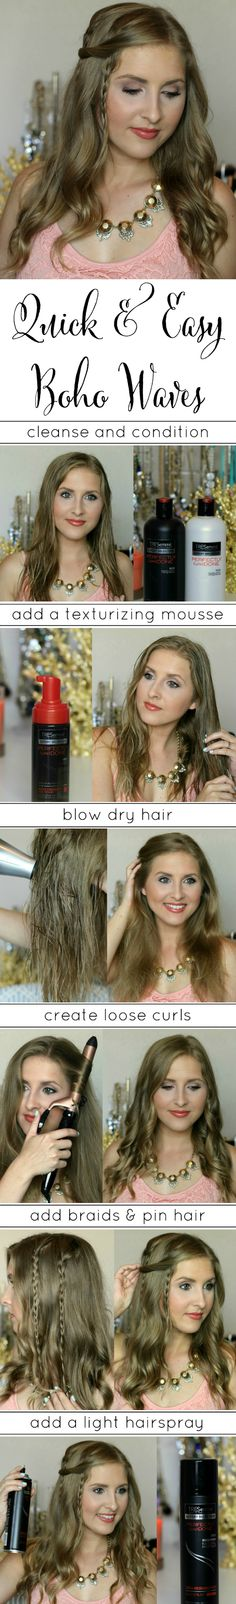 Learn how to create quick and easy braided boho waves with @tresemme and @ashleynicholas! #spon